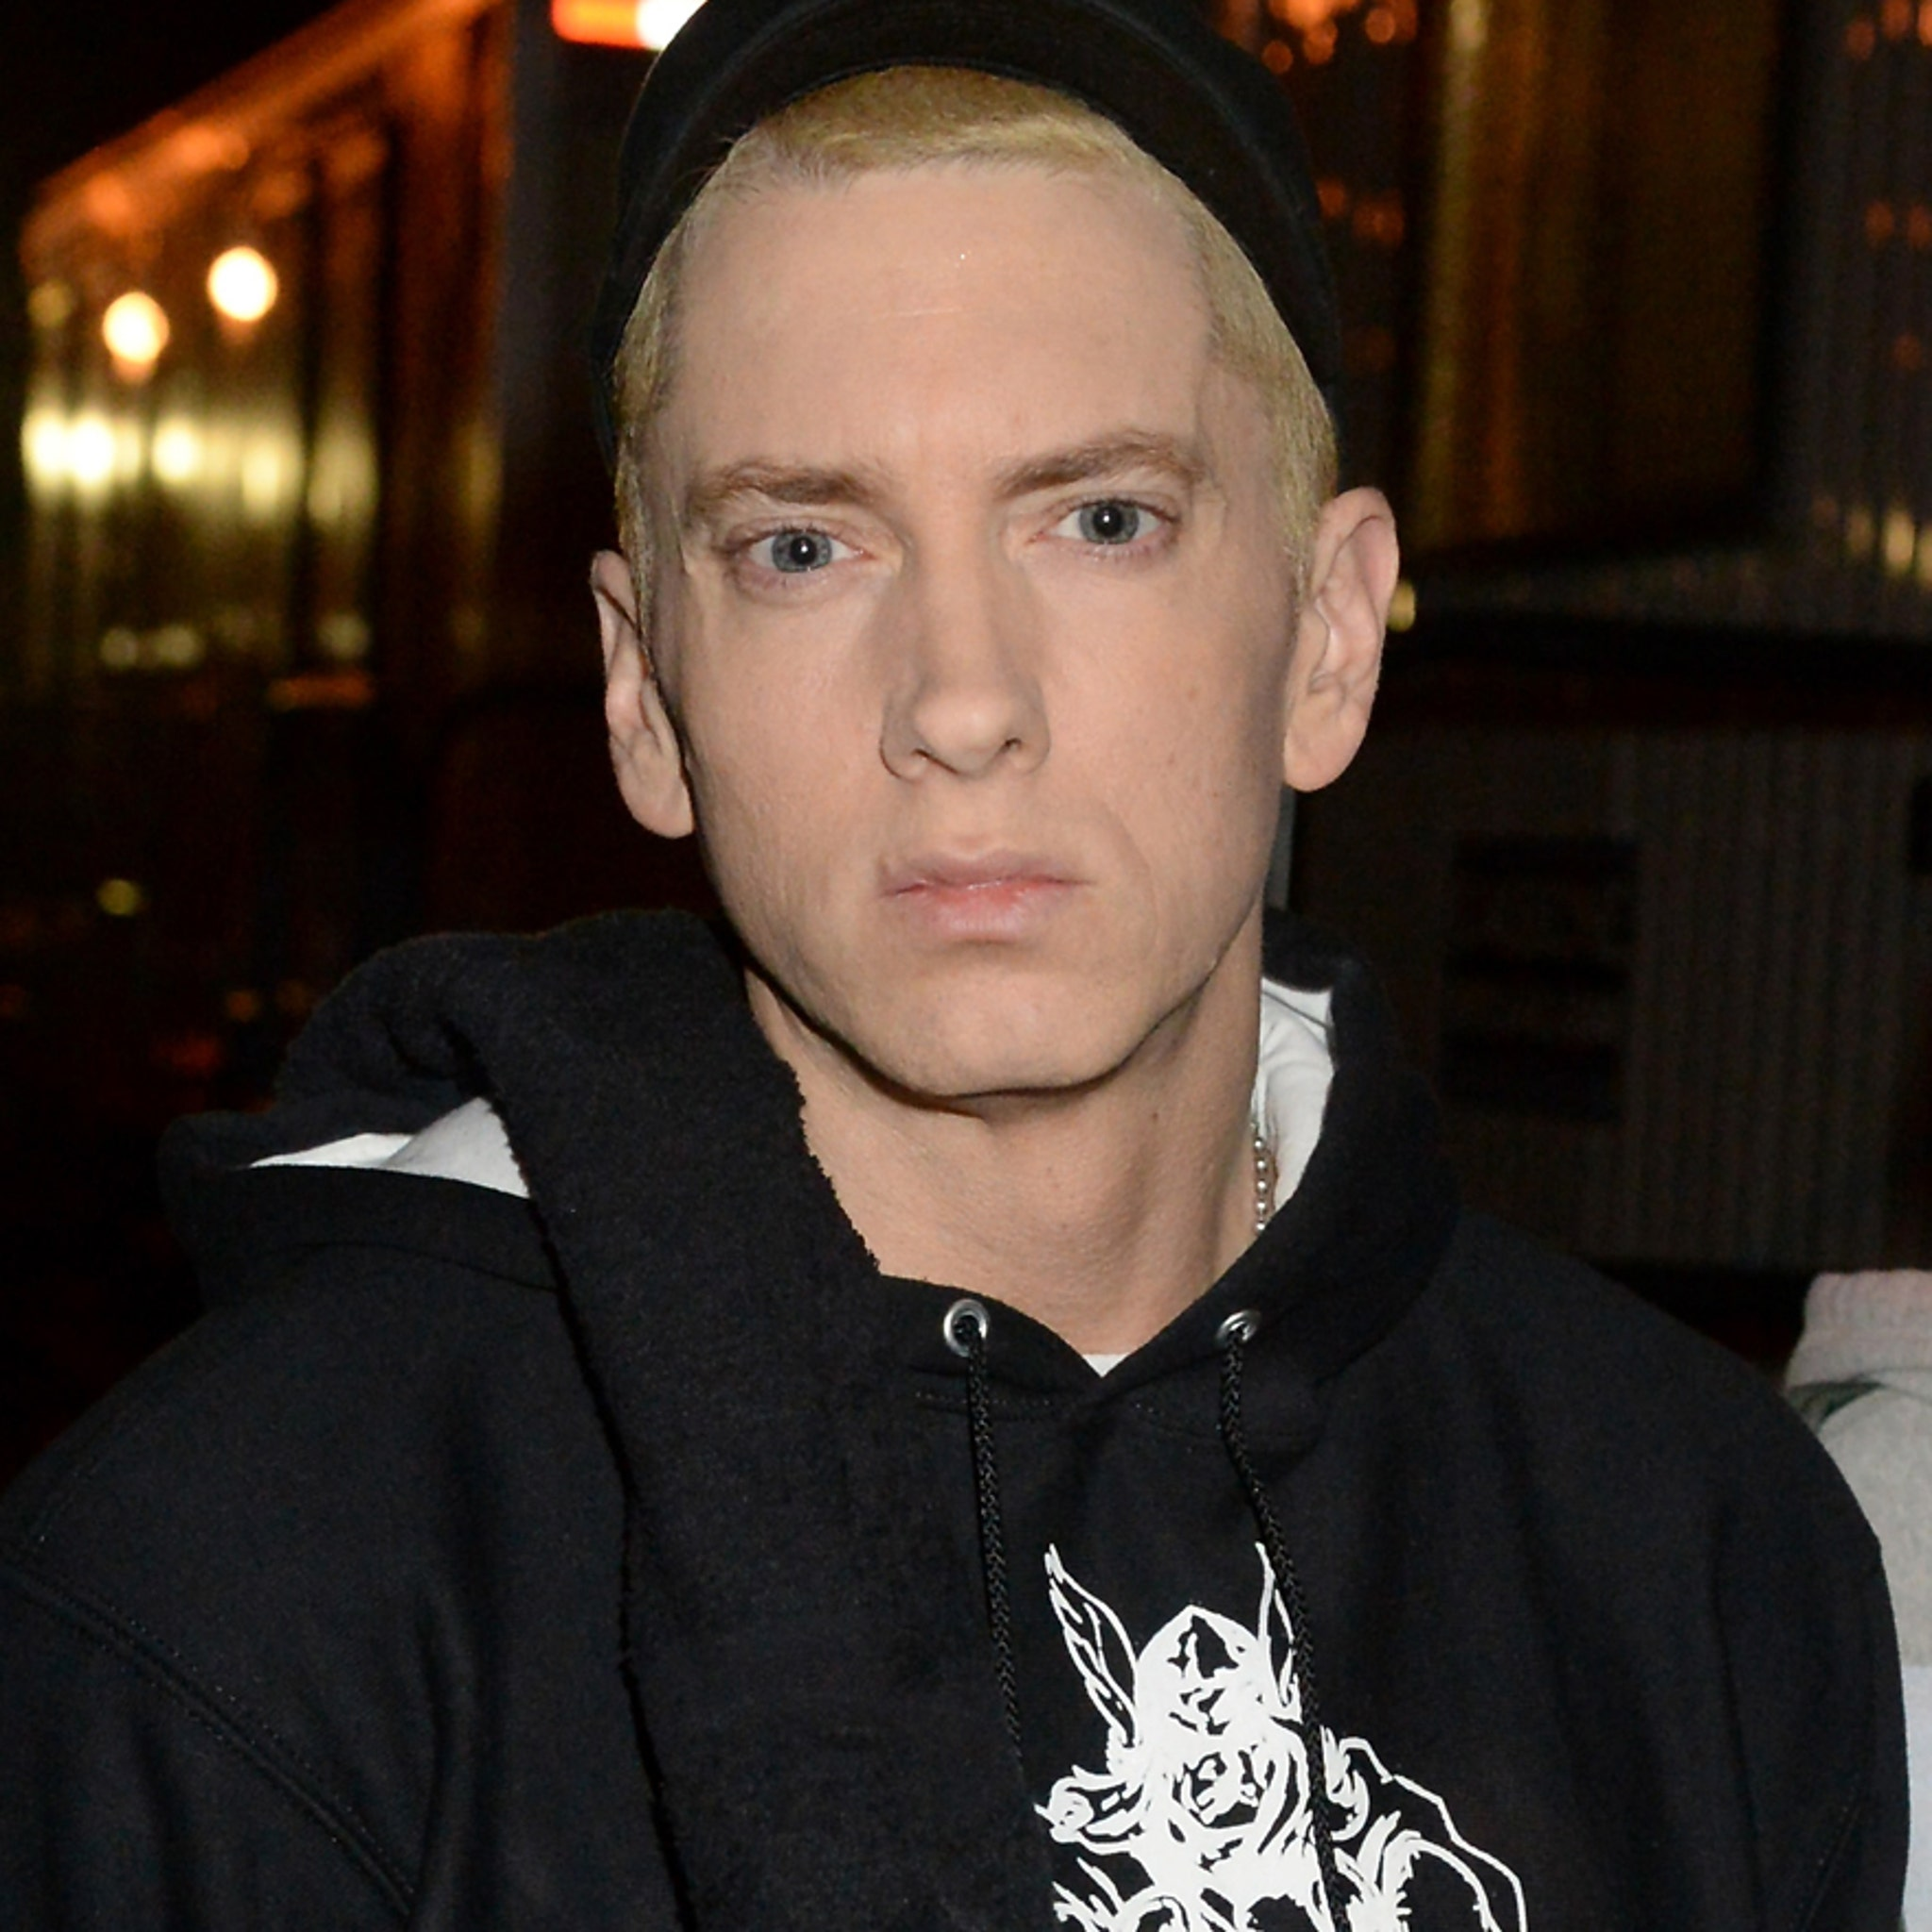 Eminem Drops Surprise Album, Lead Single 'Darkness' Recreates Vegas Shooting